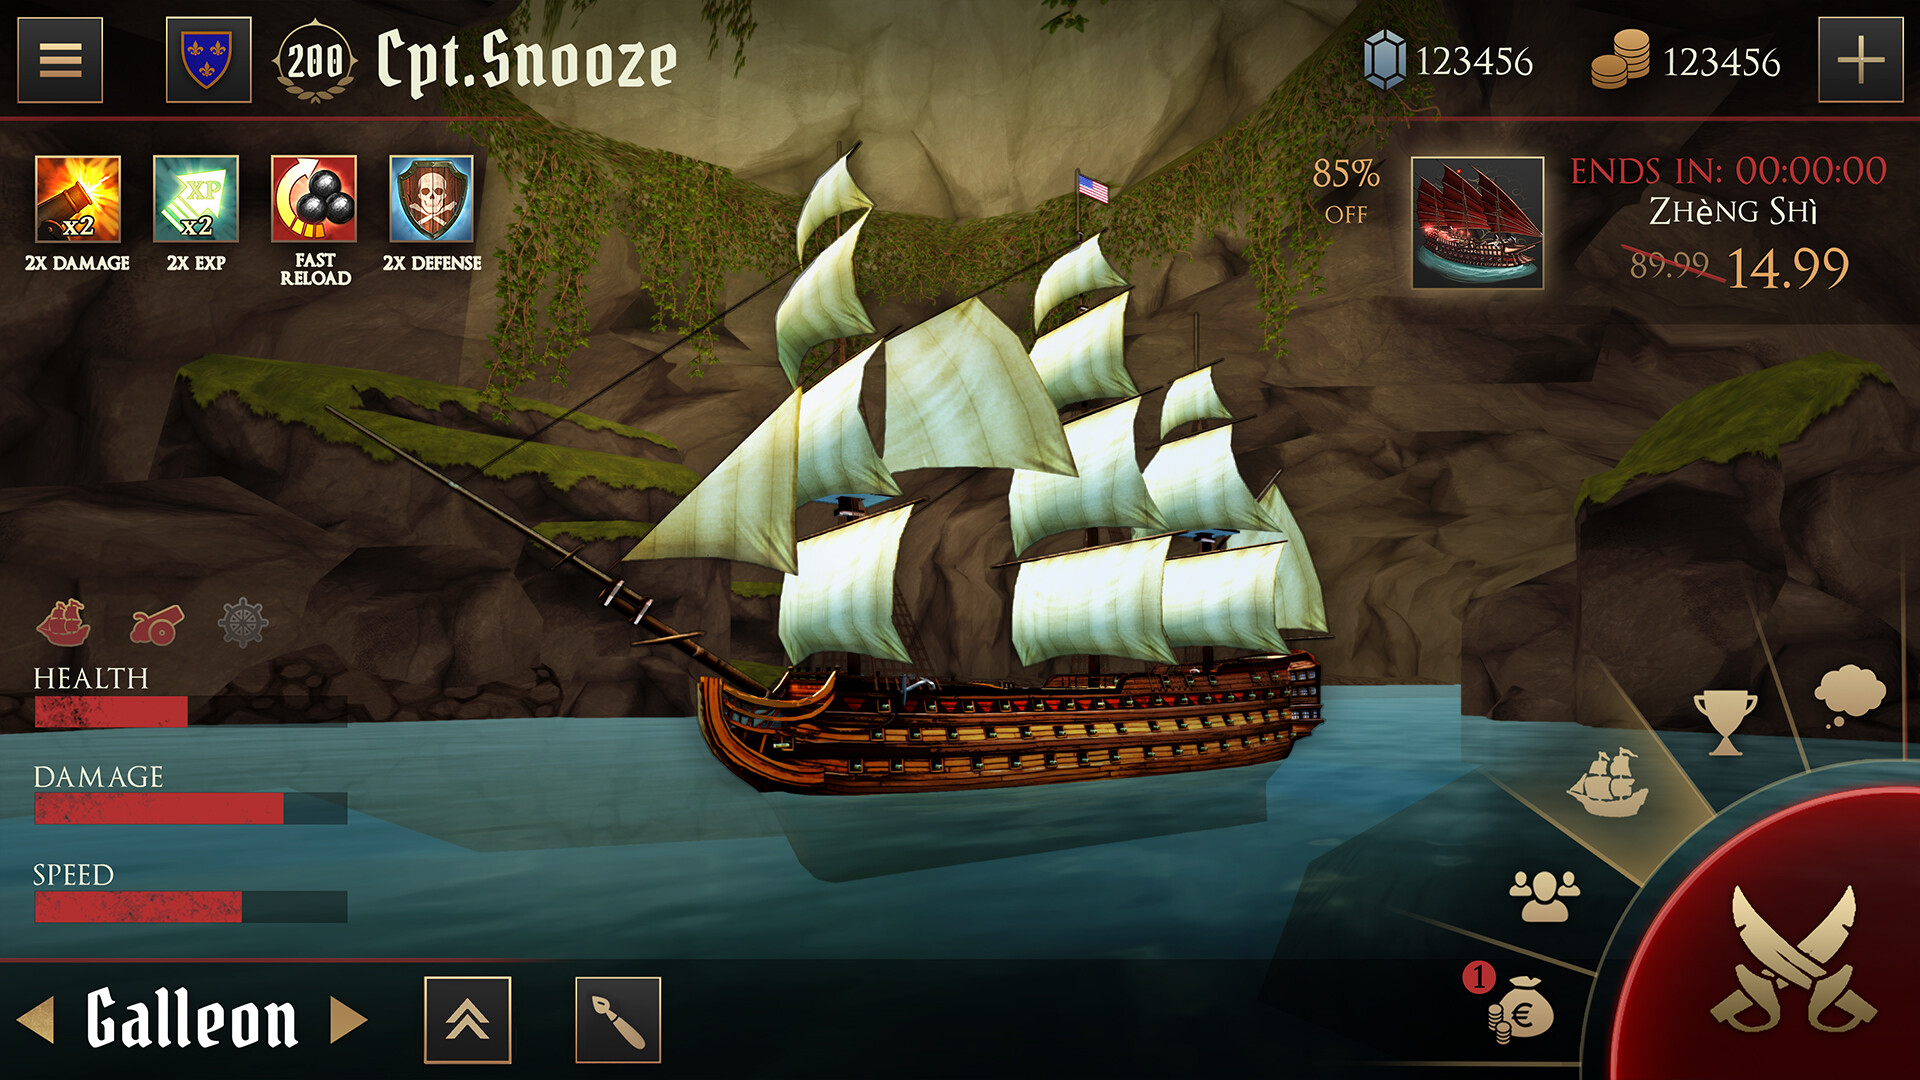 Main Menu/ Pirate lair UI concept for the new Age of Pirates multiplayer game. Most of the icons were placeholders.